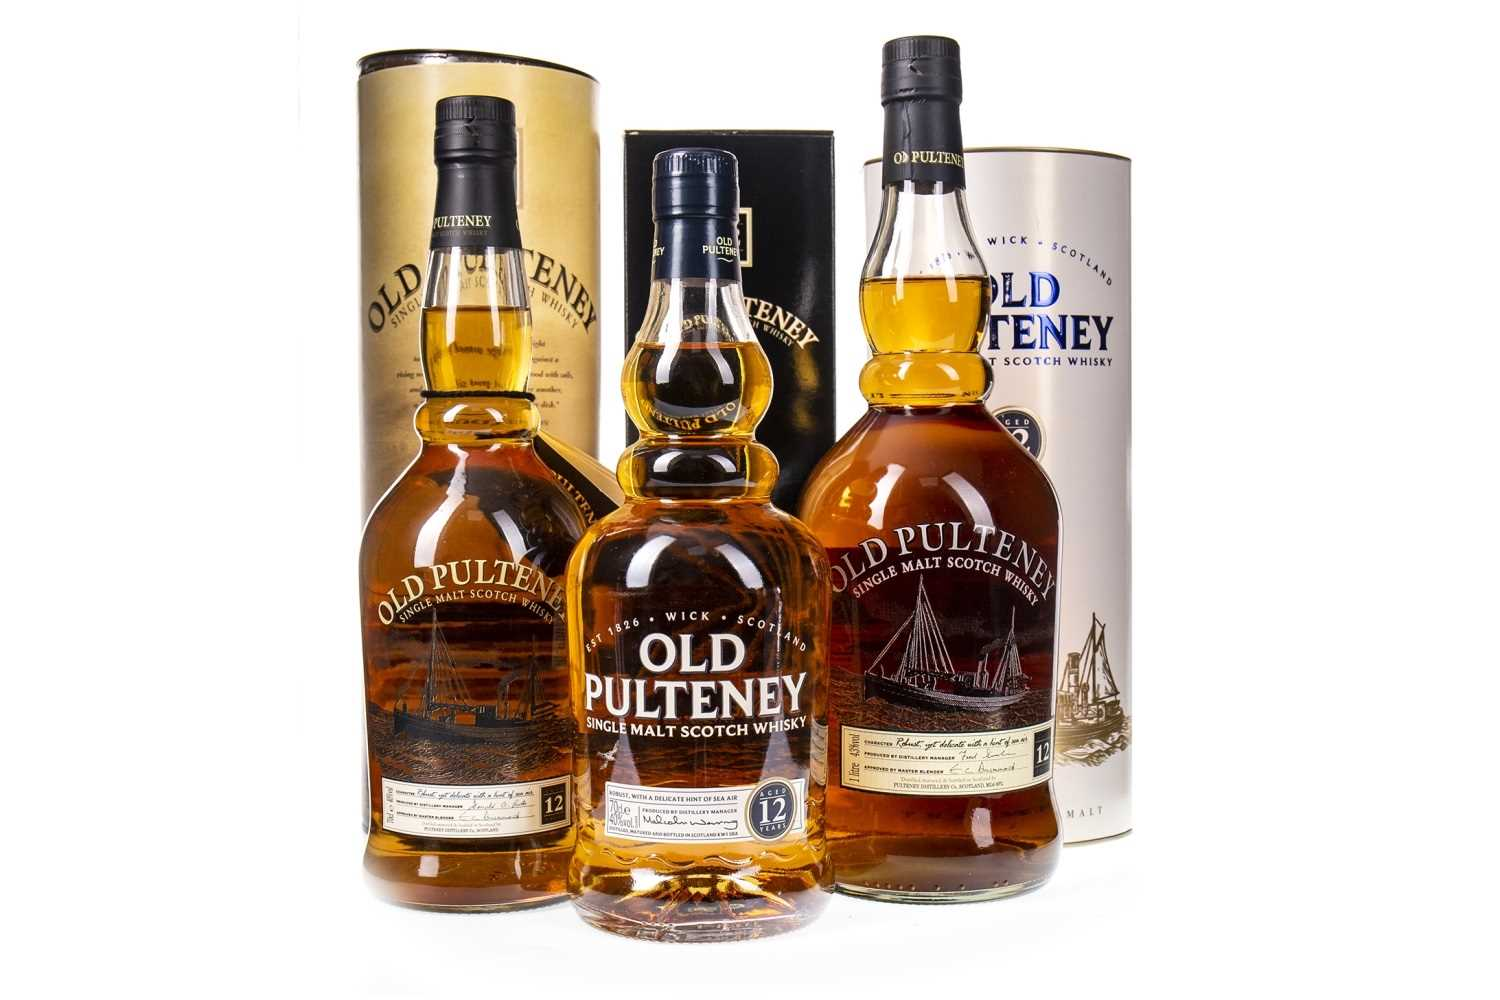 Lot 310-ONE LITRE AND TWO BOTTLES OF OLD PULTENEY AGED 12 YEARS